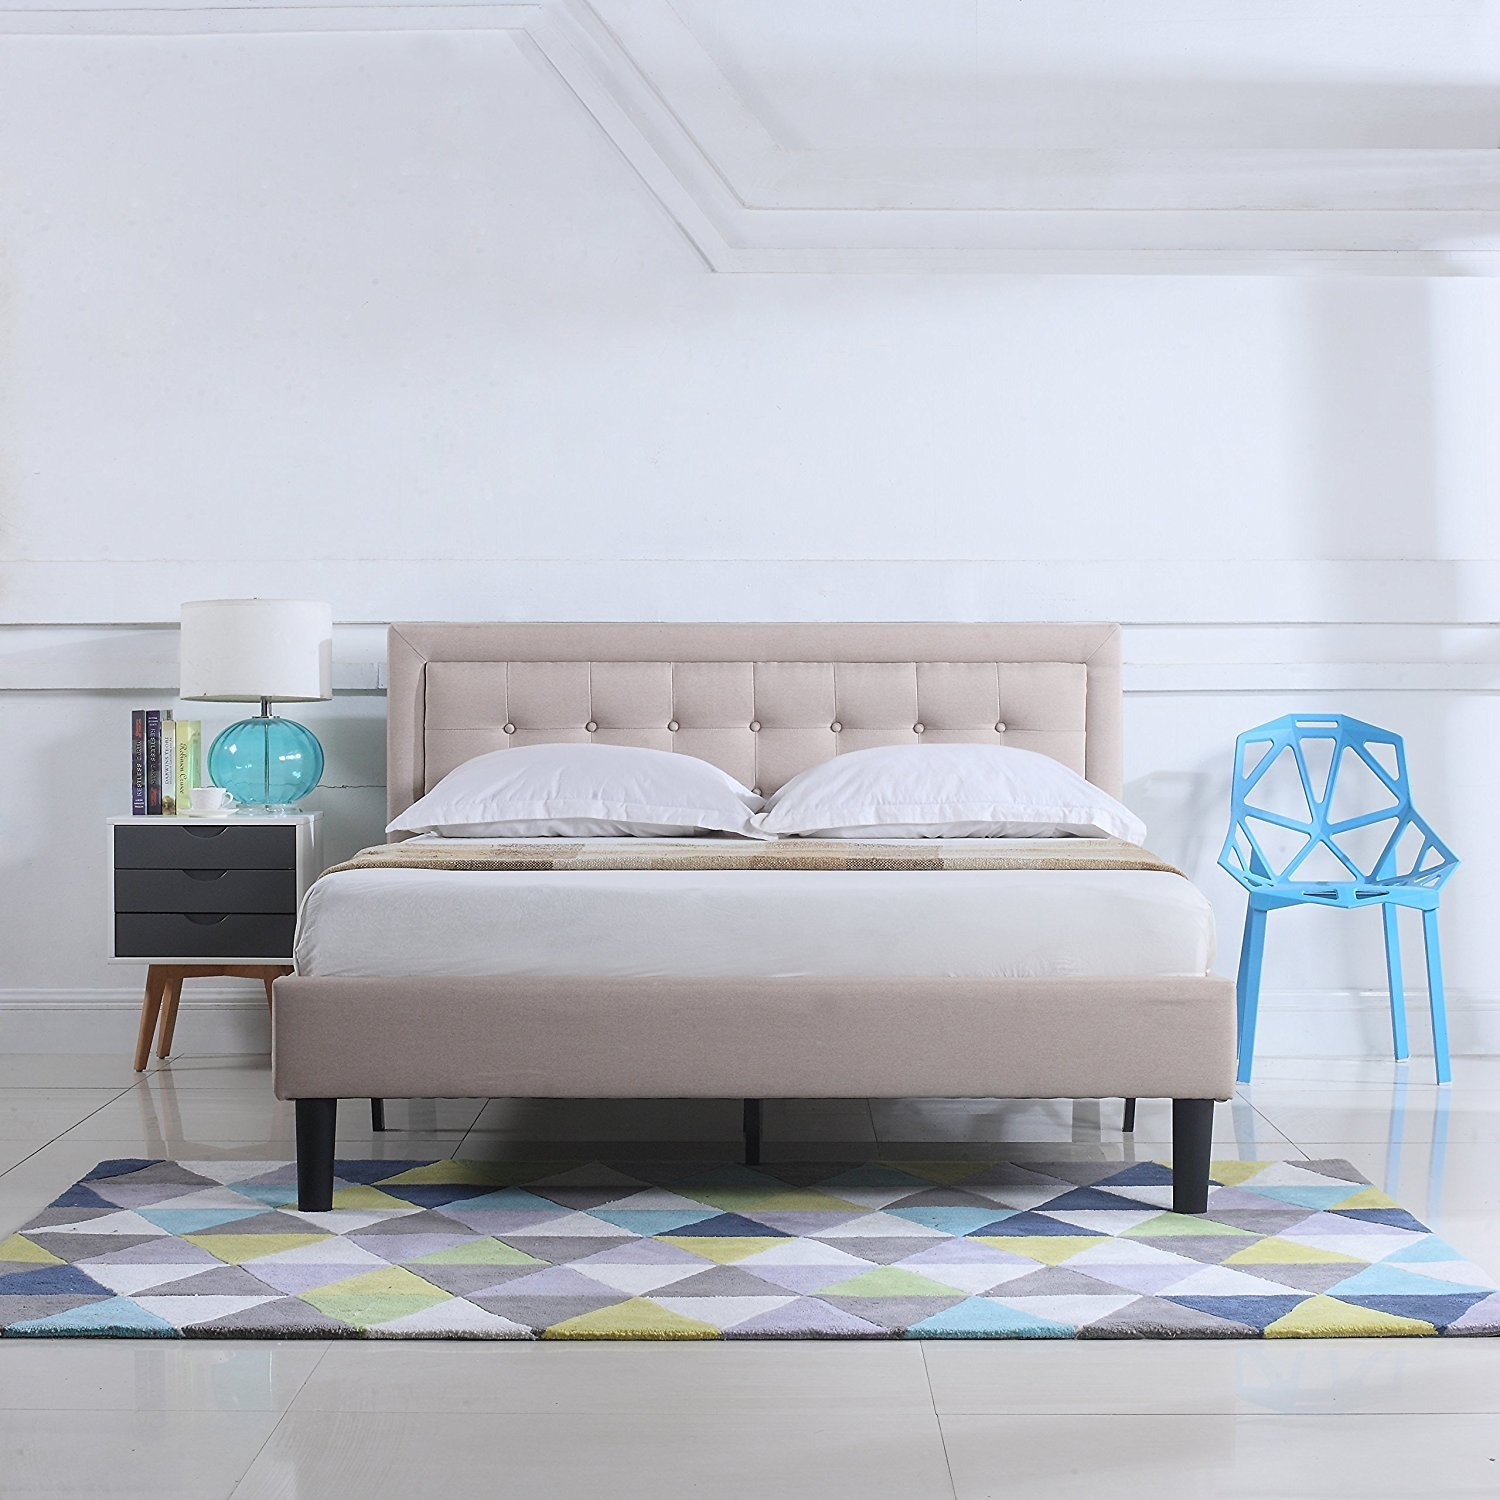 Low Profile Bed Tufted Upholstered Headboard Nailhead Platform Bed